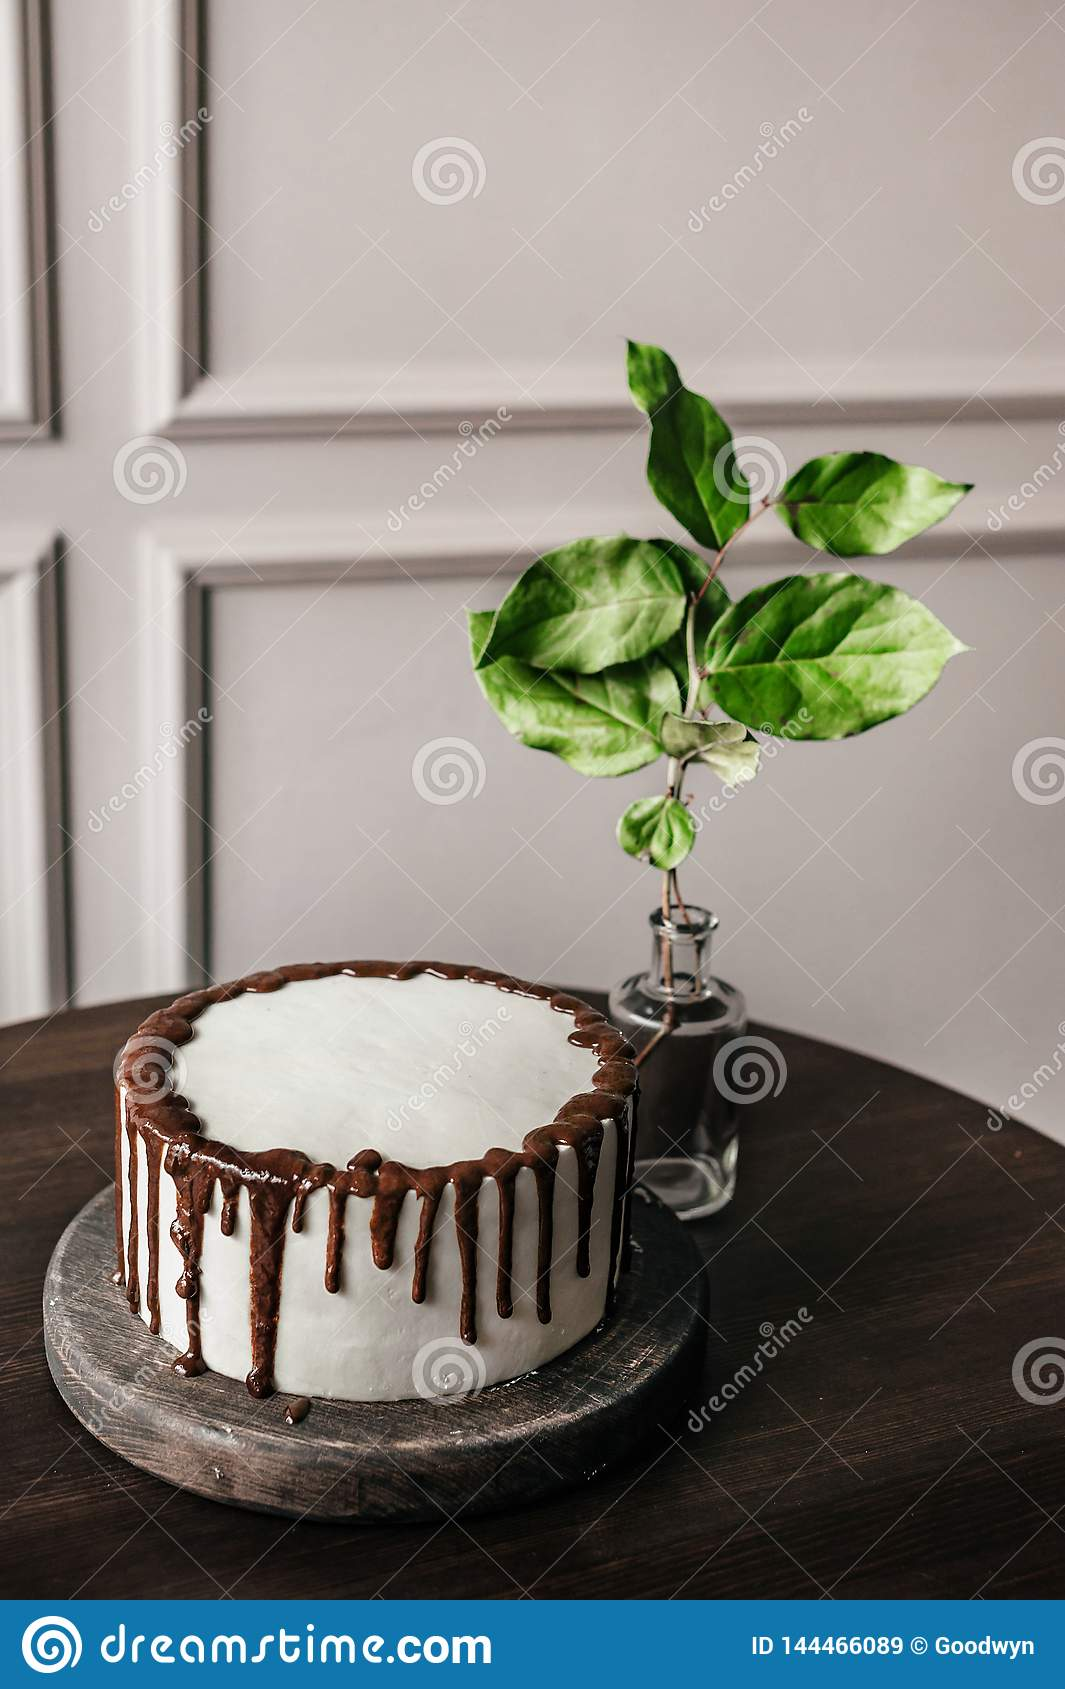 Delicious white cake with chocolate on a wooden stand. Next is a vase with a leaf.